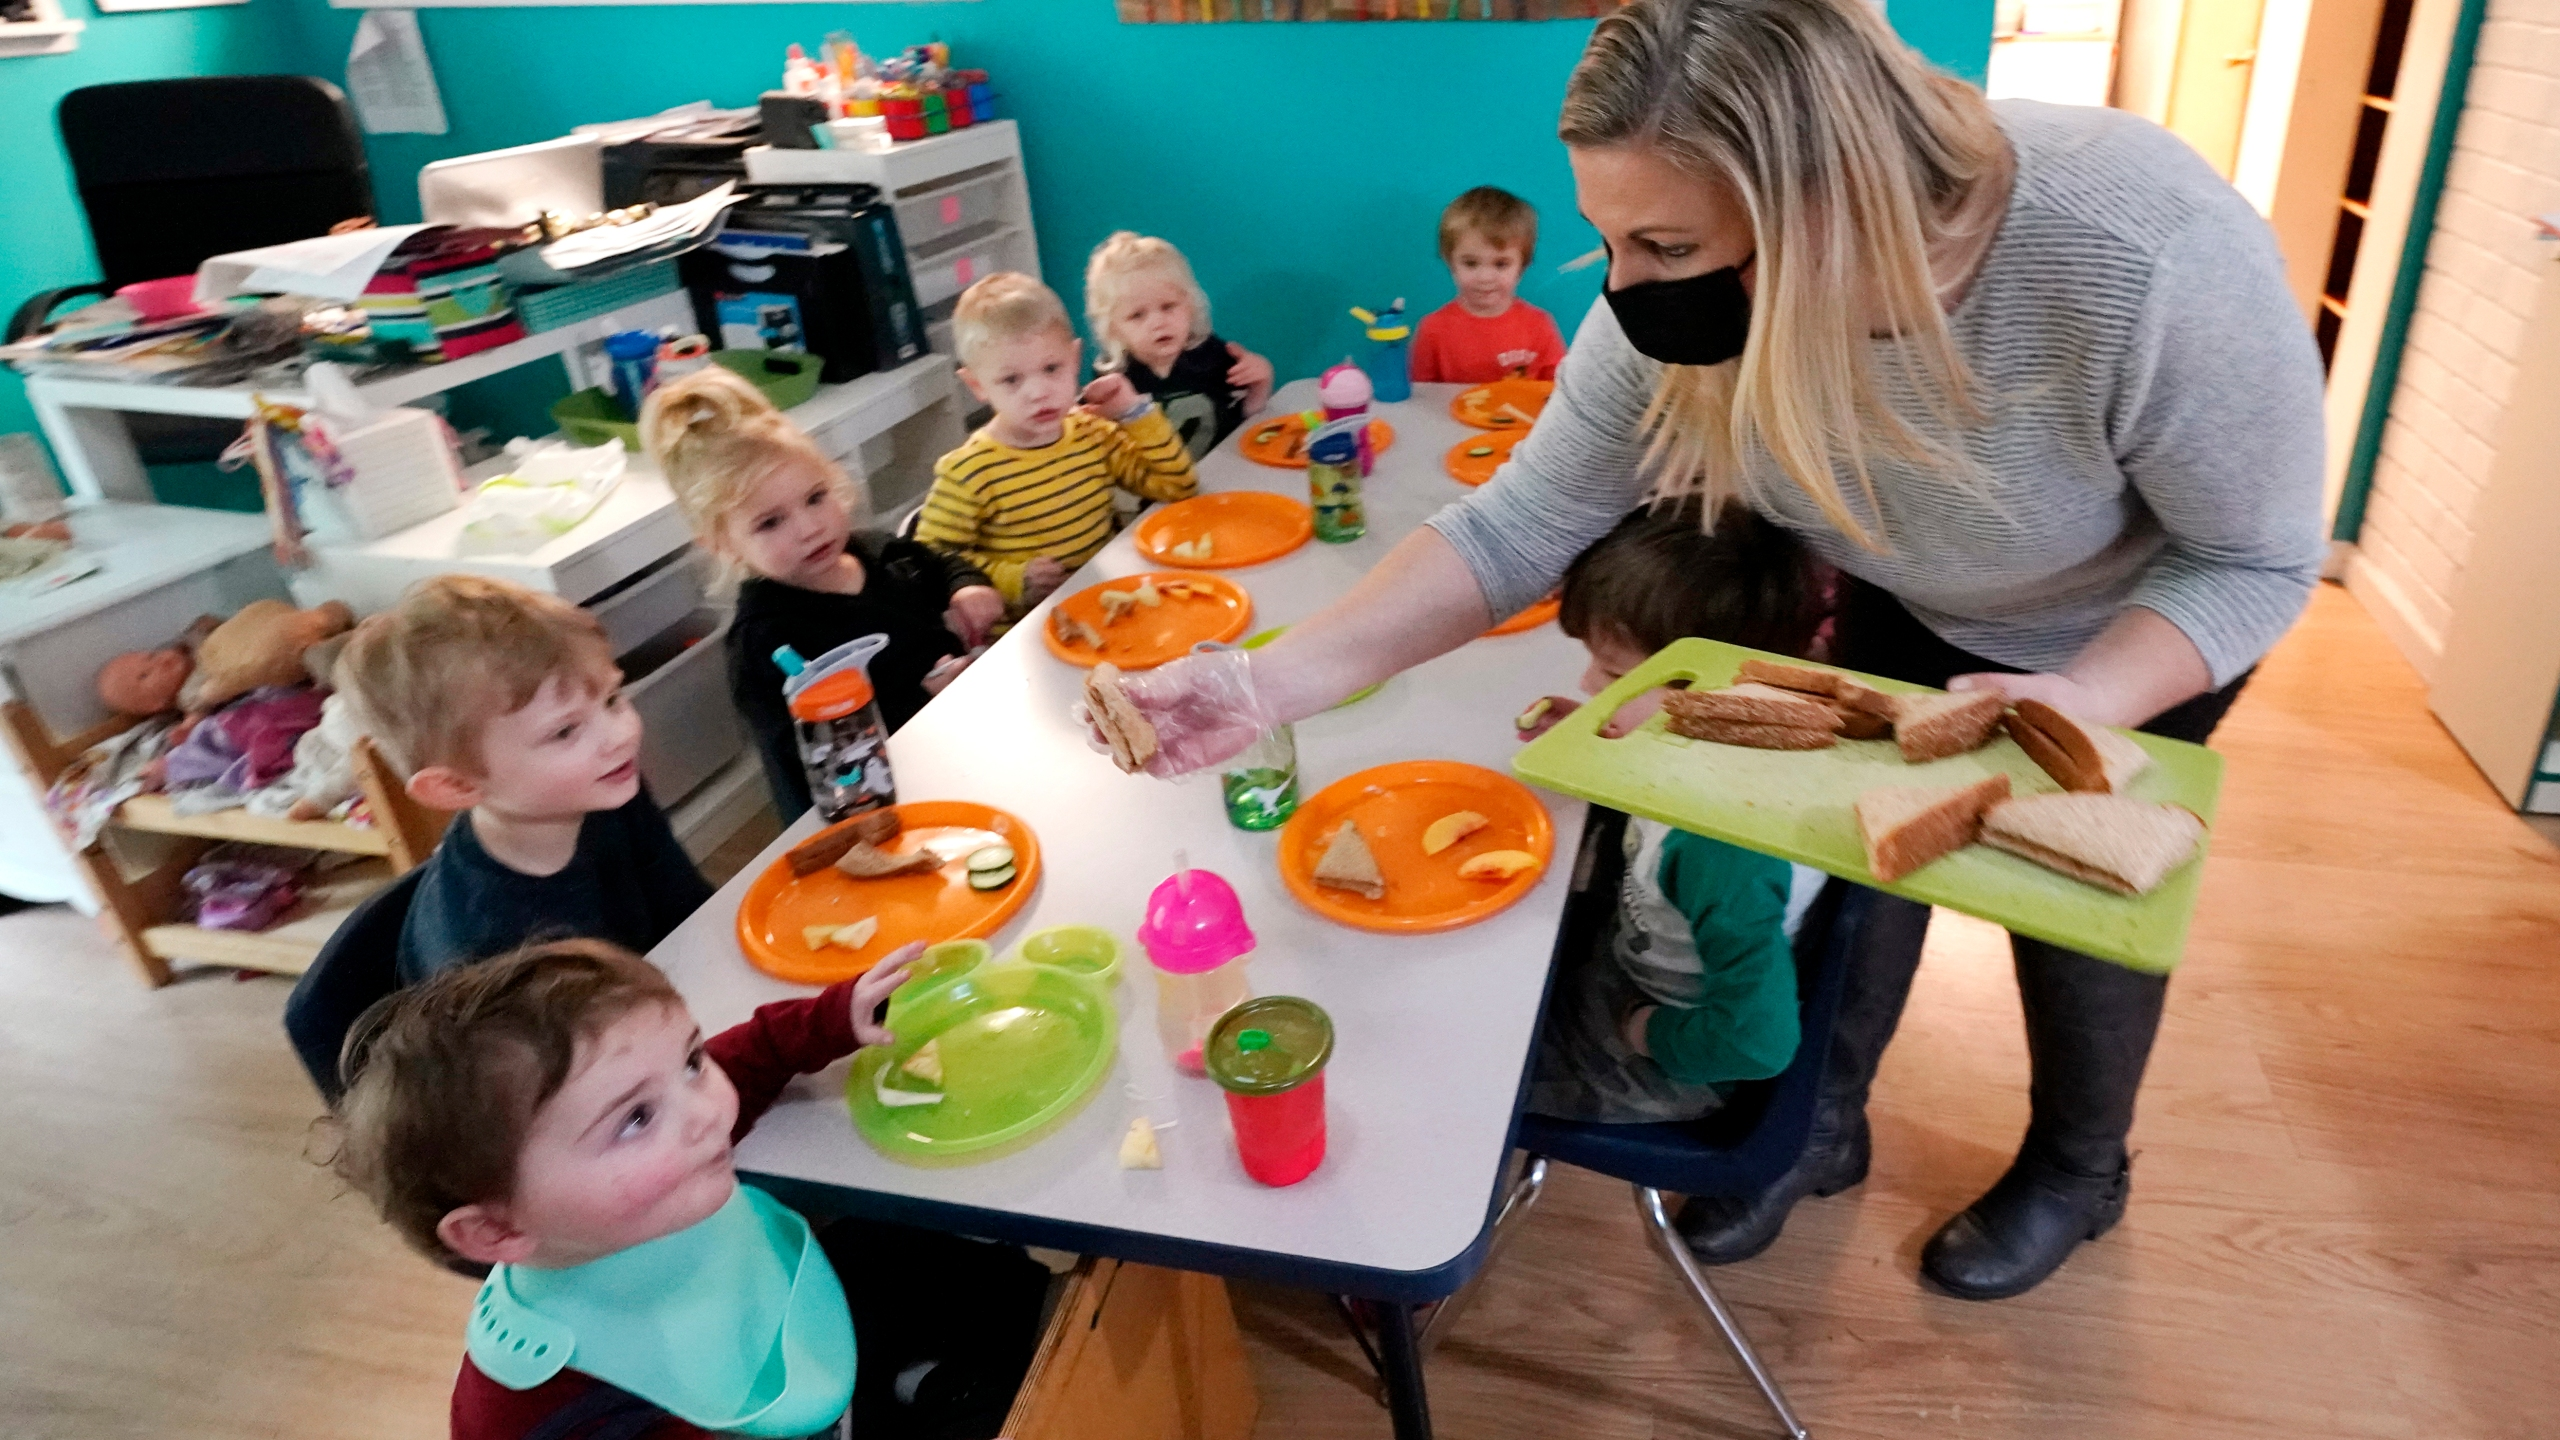 Amy McCoy serves lunch to preschoolers at her Forever Young Daycare facility, Monday, Oct. 25, 2021, in Mountlake Terrace, Wash. Child care centers once operated under the promise that it would always be there when parents have to work. Now, each teacher resignation, coronavirus exposure, and day care center closure reveals an industry on the brink, with wide-reaching implications for an entire economy's workforce. (AP Photo/Elaine Thompson)